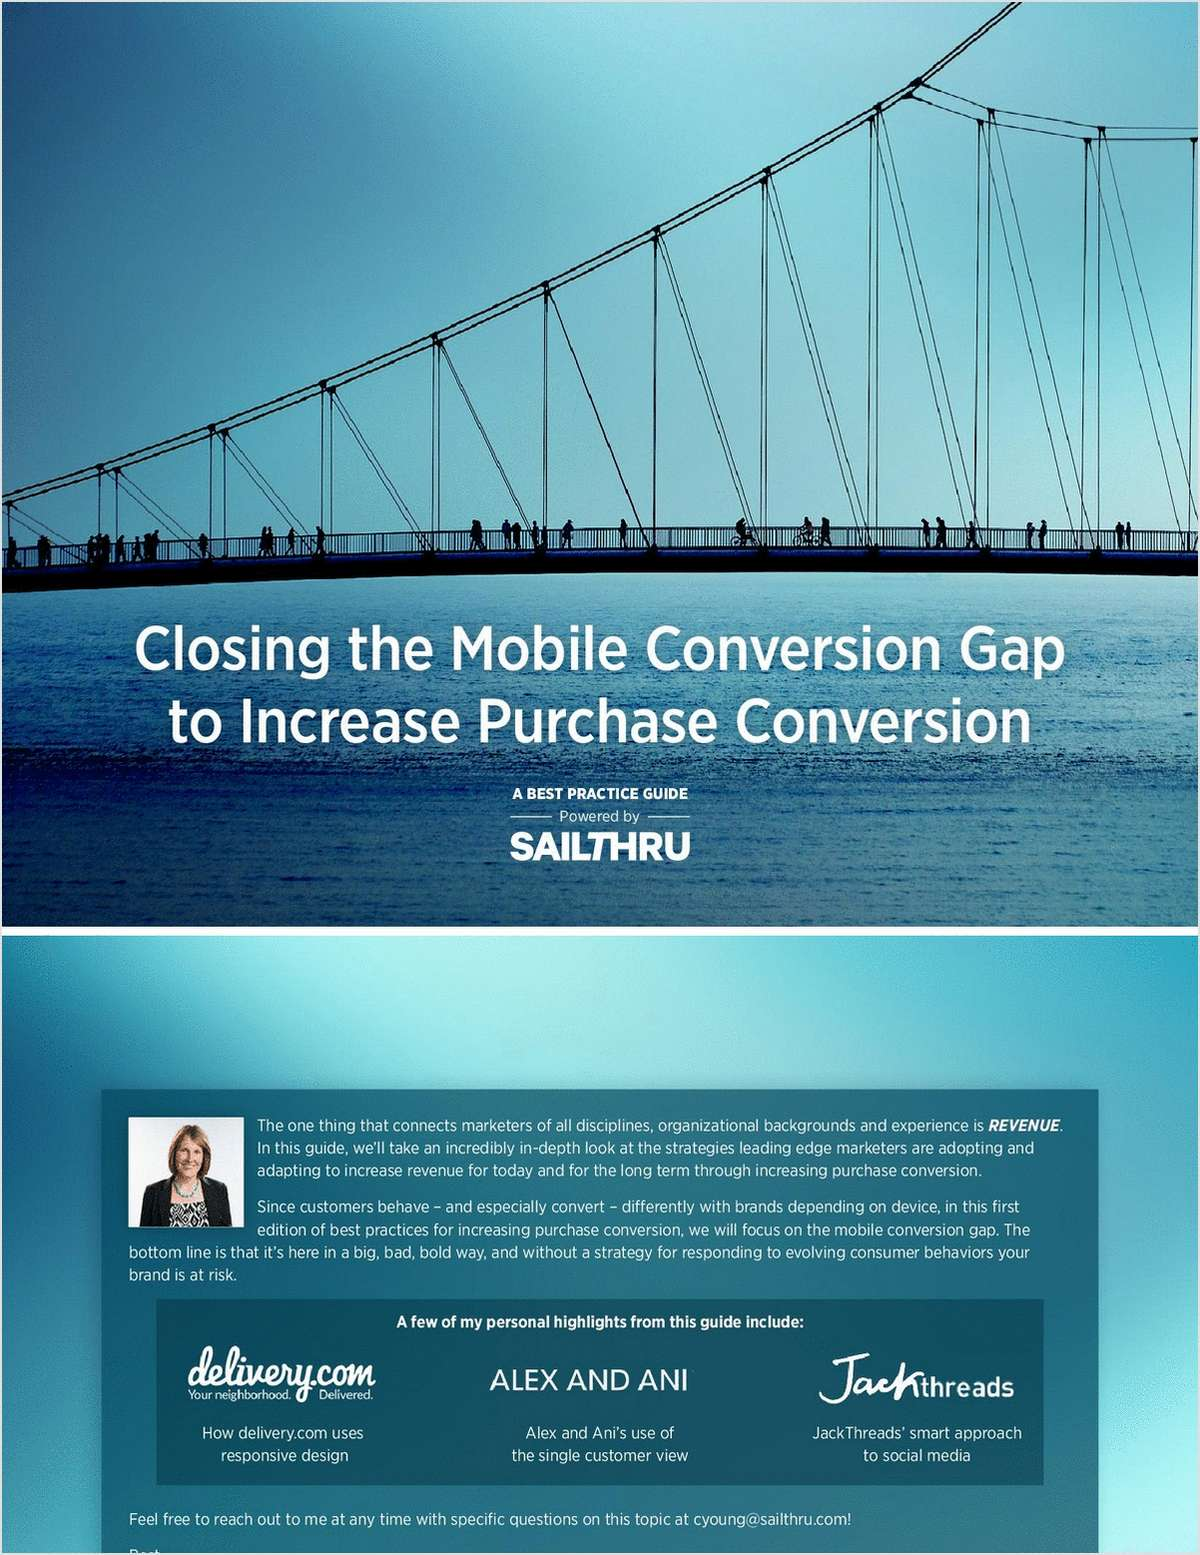 The Modern Marketer's Guide to Increasing Revenue and Conversion